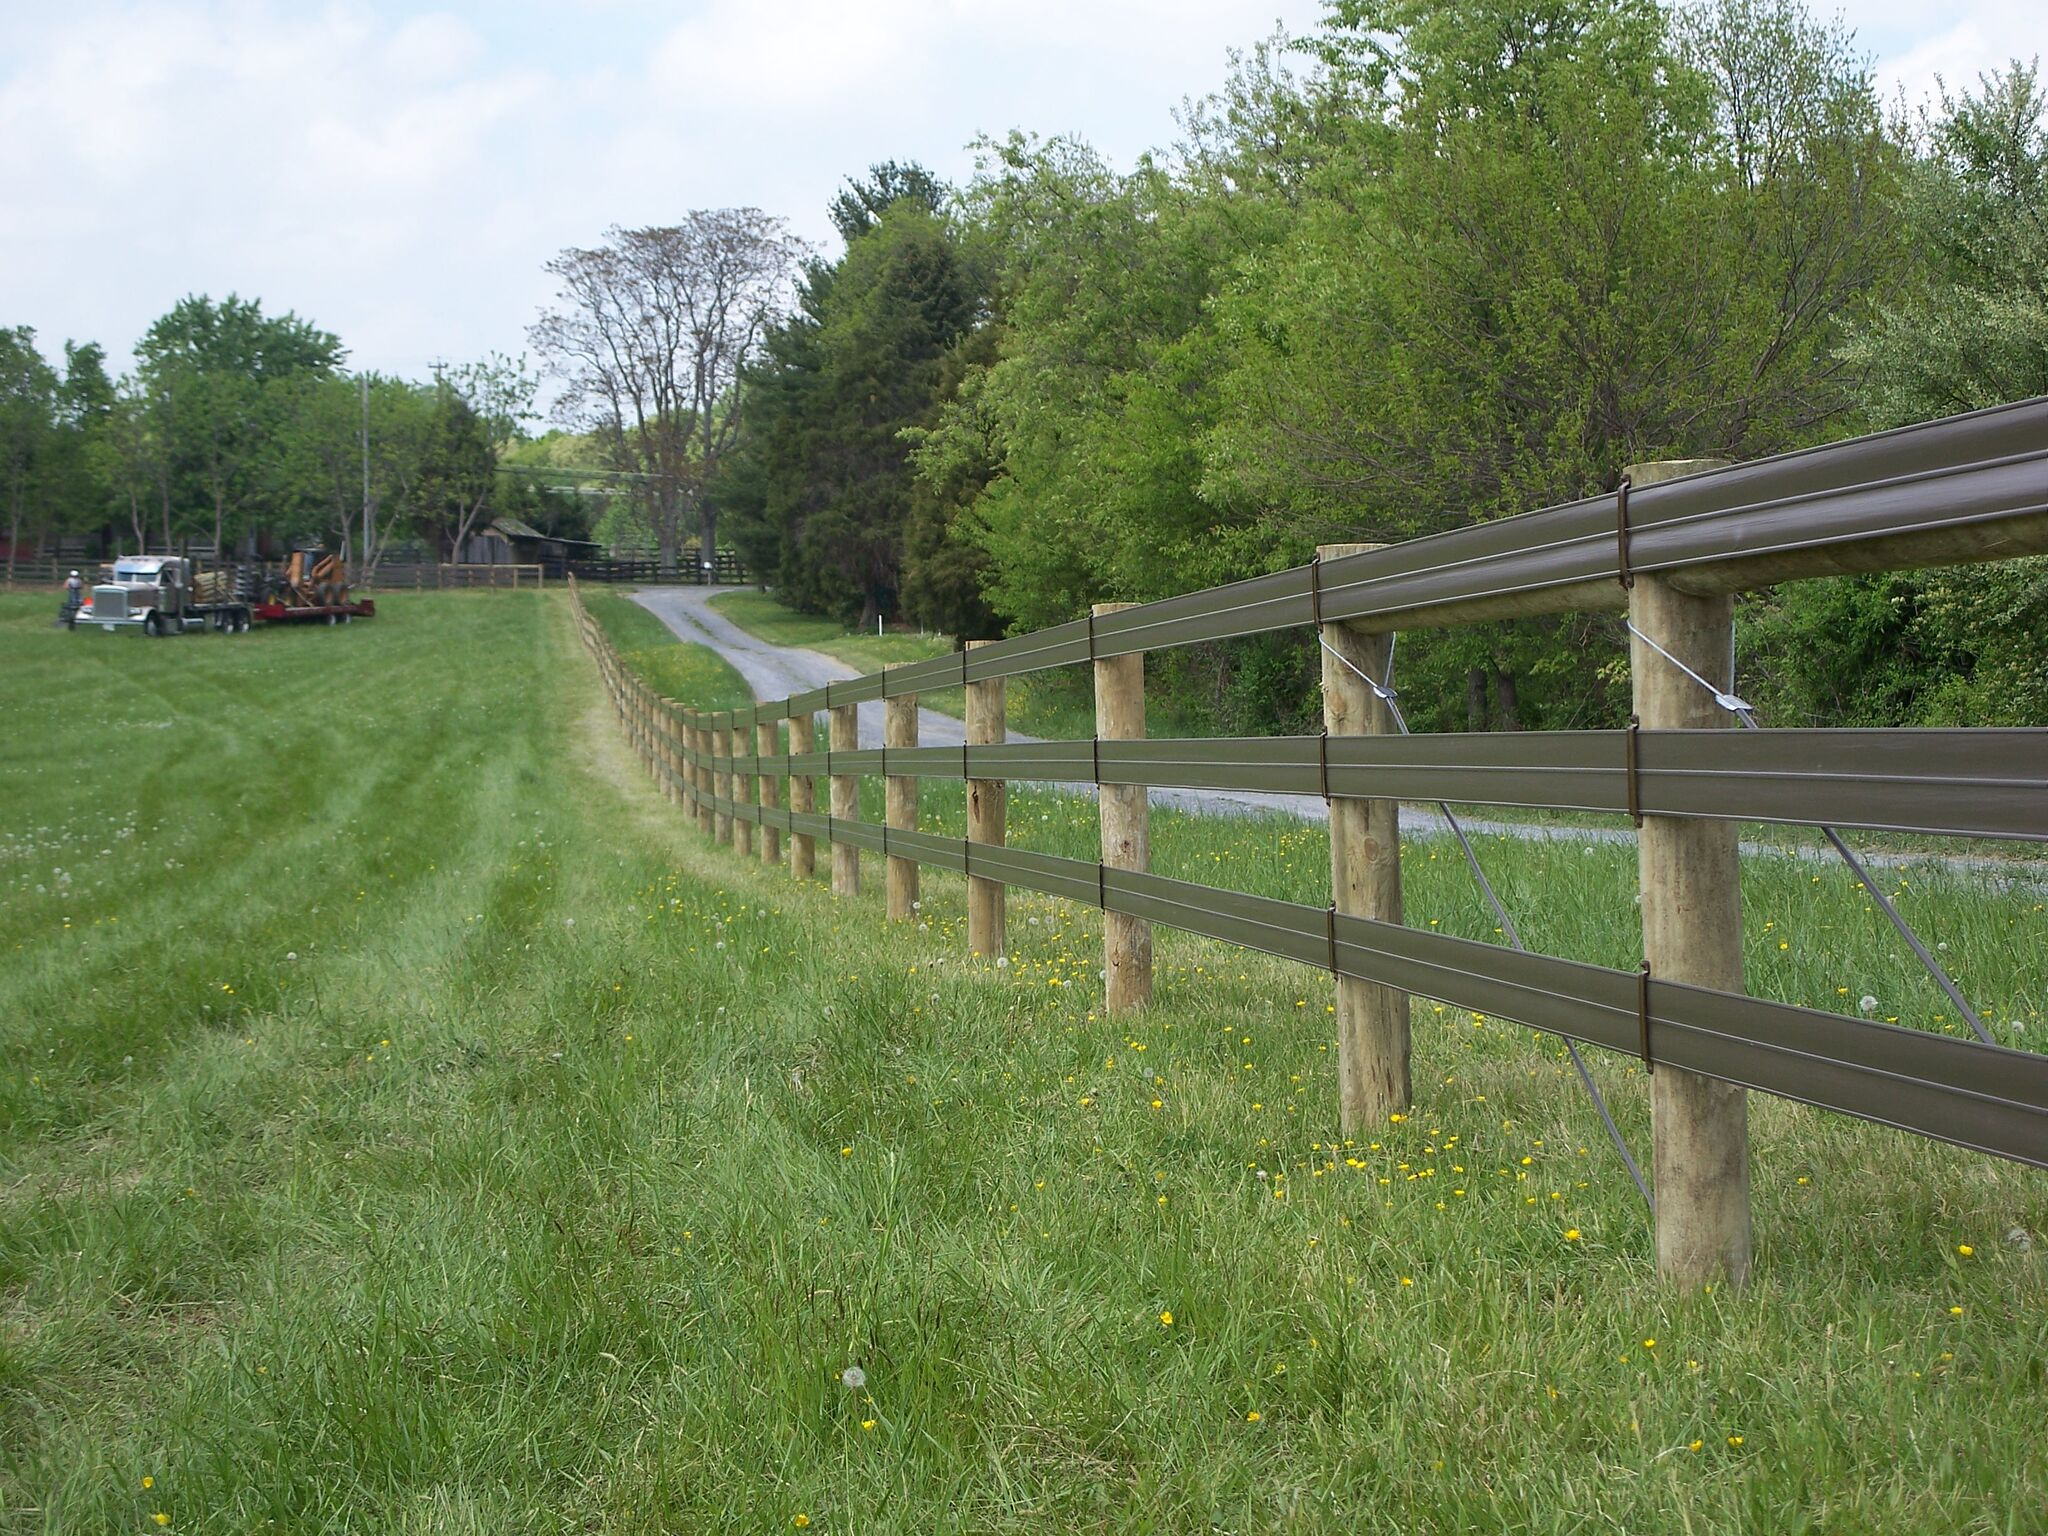 How To Install Woven Wire Horse Fence - Best Fence 2018